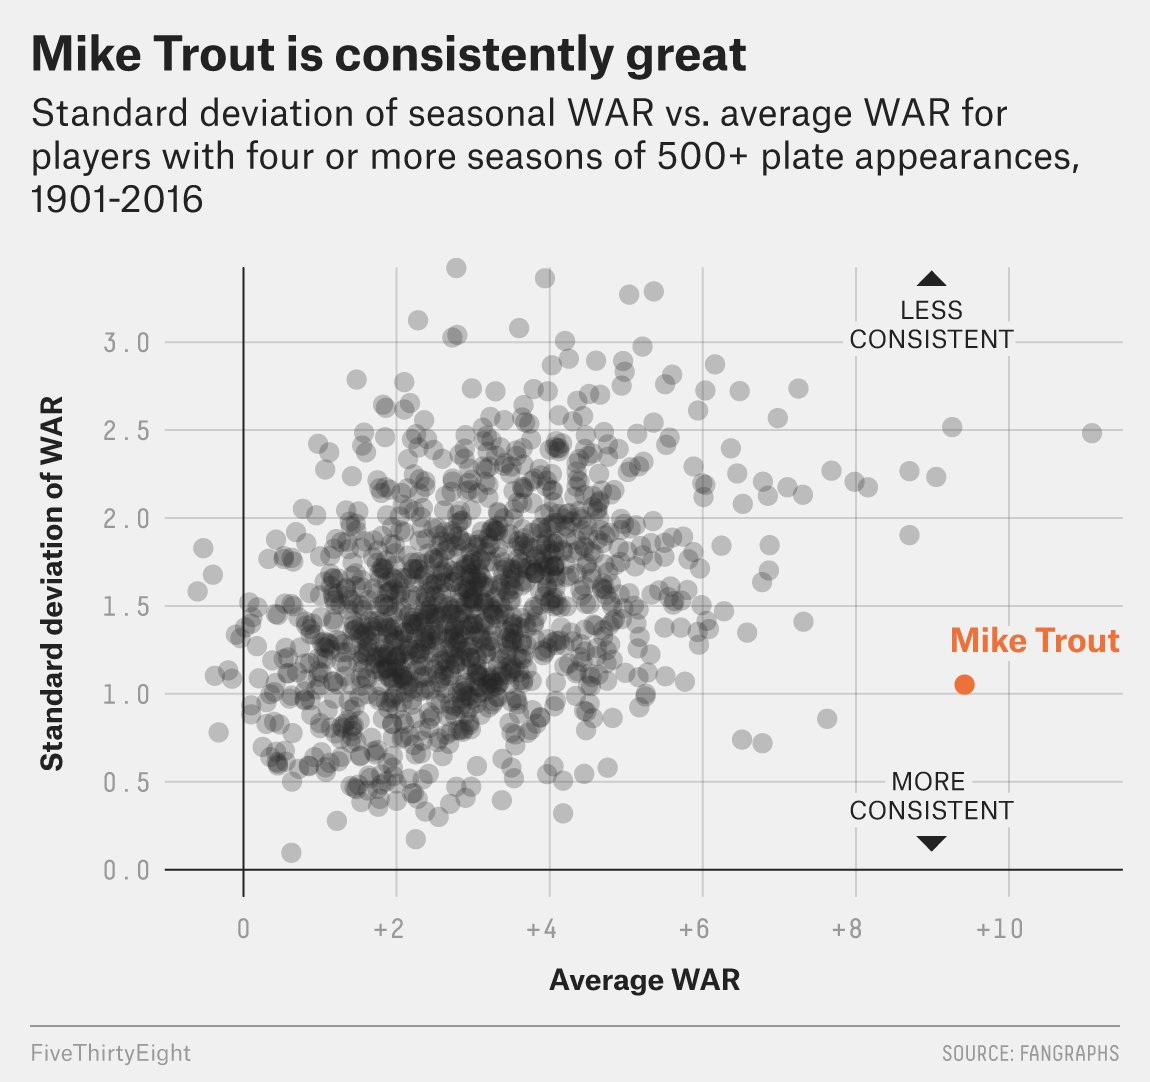 Mike Trout is outrageously consistent at being outrageously great. https://t.co/pNwyd9avv4 https://t.co/XfW8caU1xK